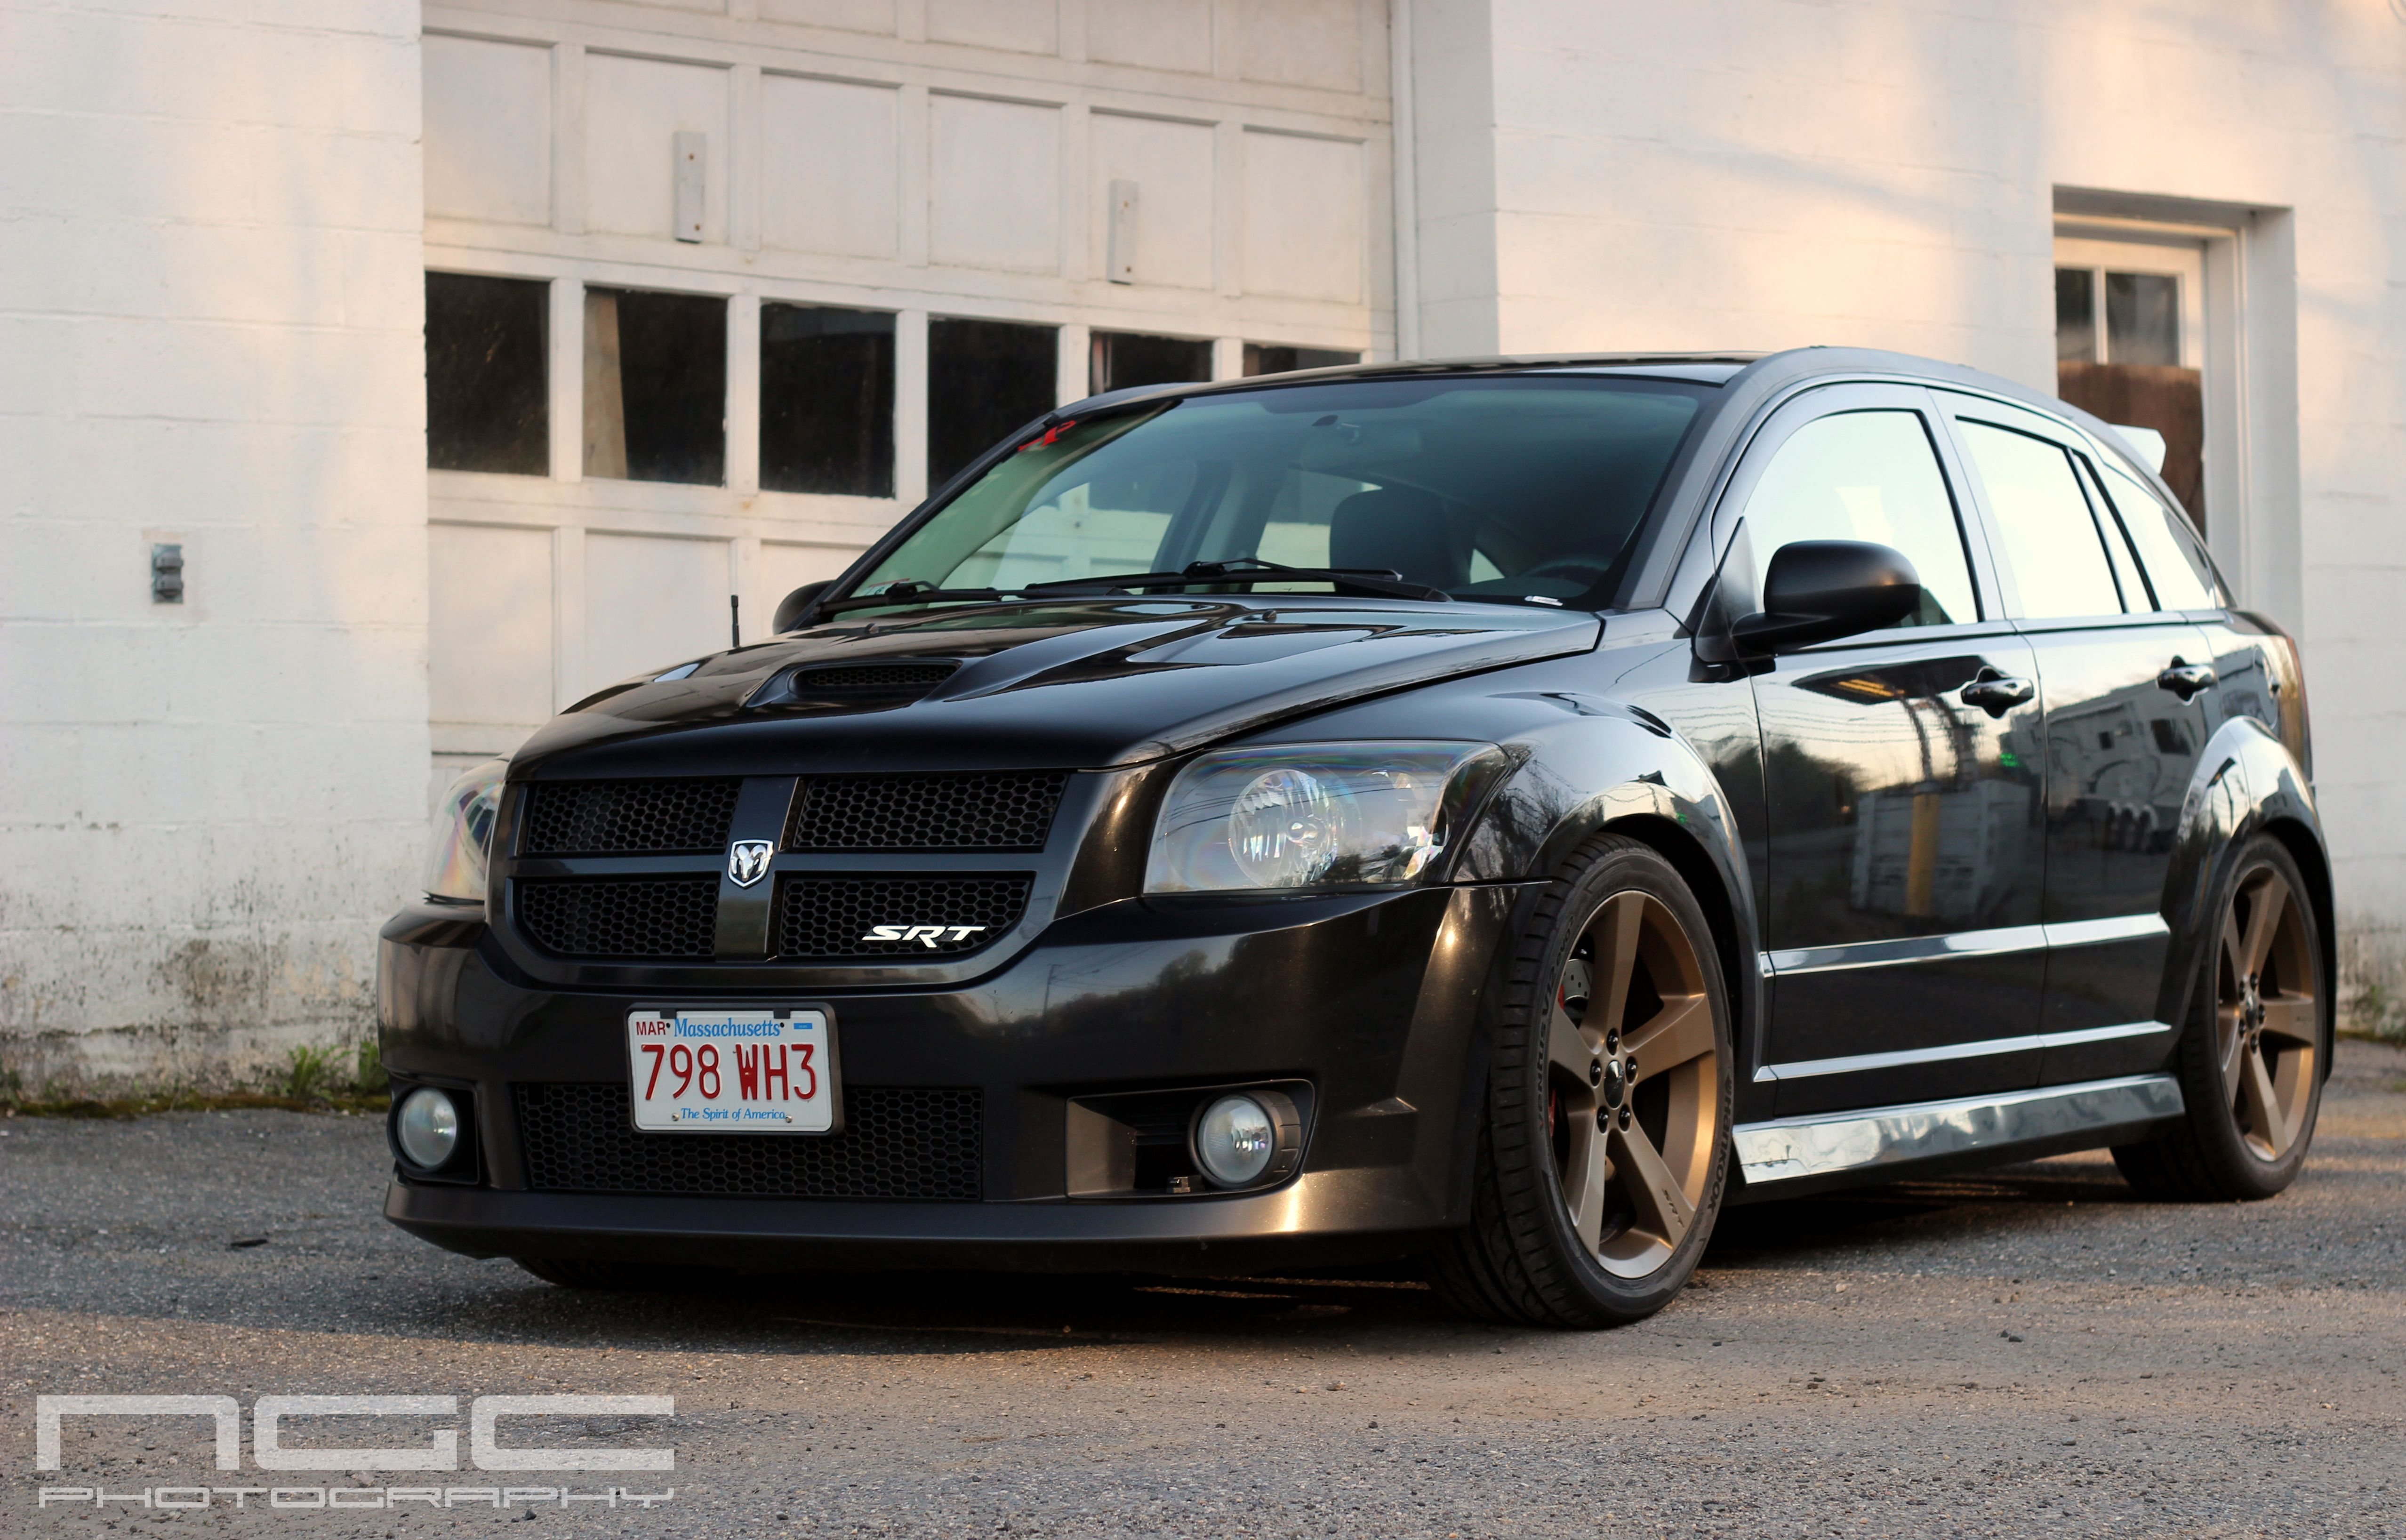 2008 dodge caliber srt4 toys pinterest dodge caliber srt4 dodge caliber and cars. Black Bedroom Furniture Sets. Home Design Ideas